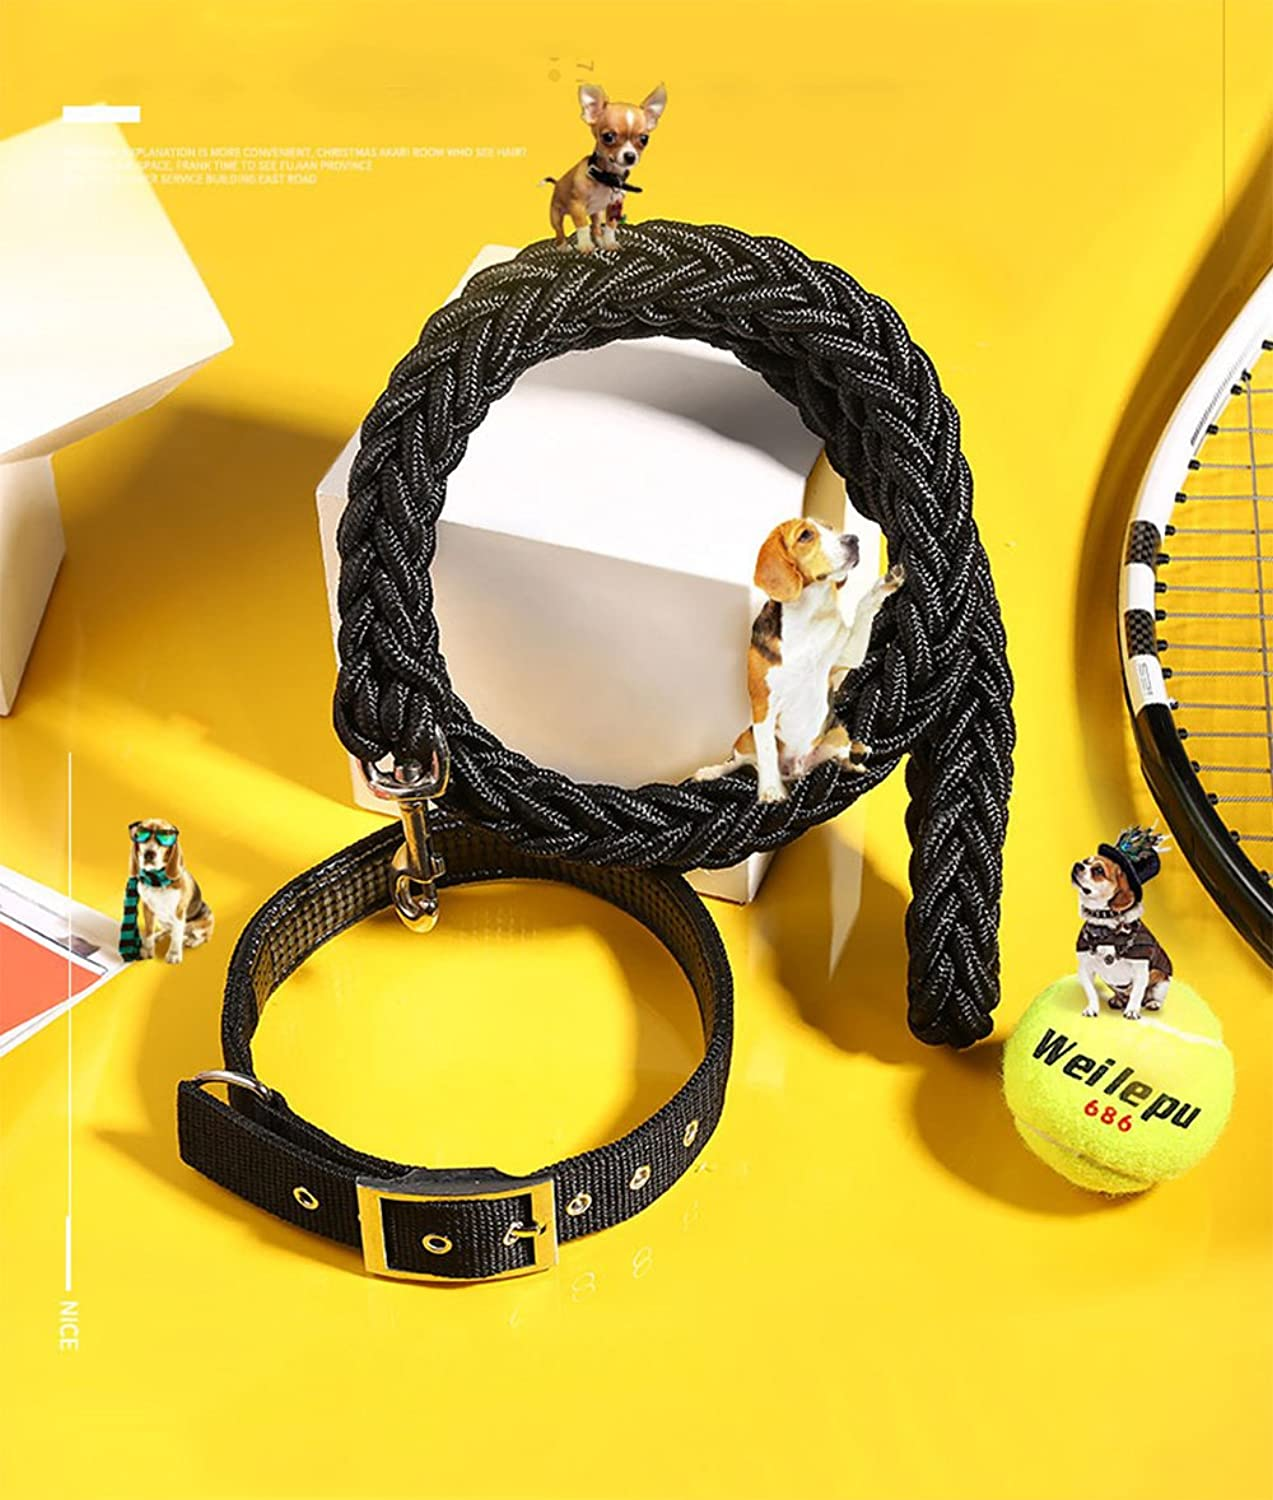 Bungee Double Dog Connector Lead, Wrapped Dog Leash and Shunter Walking Puppy Medium and Large Dogs (Black)